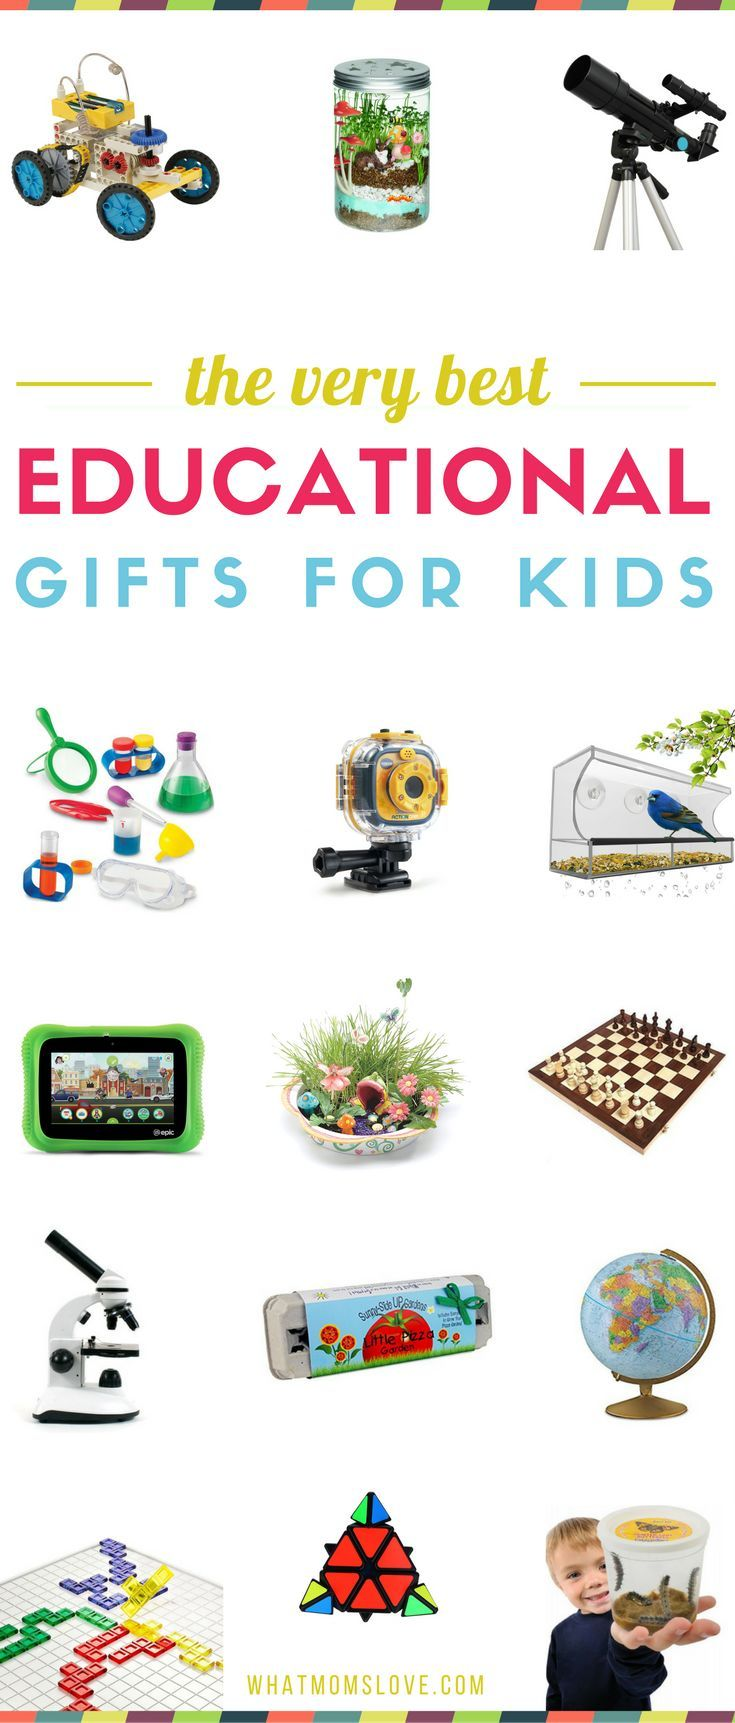 Non-Toy Gift Guide: Gifts for Learning & Expanding Horizons